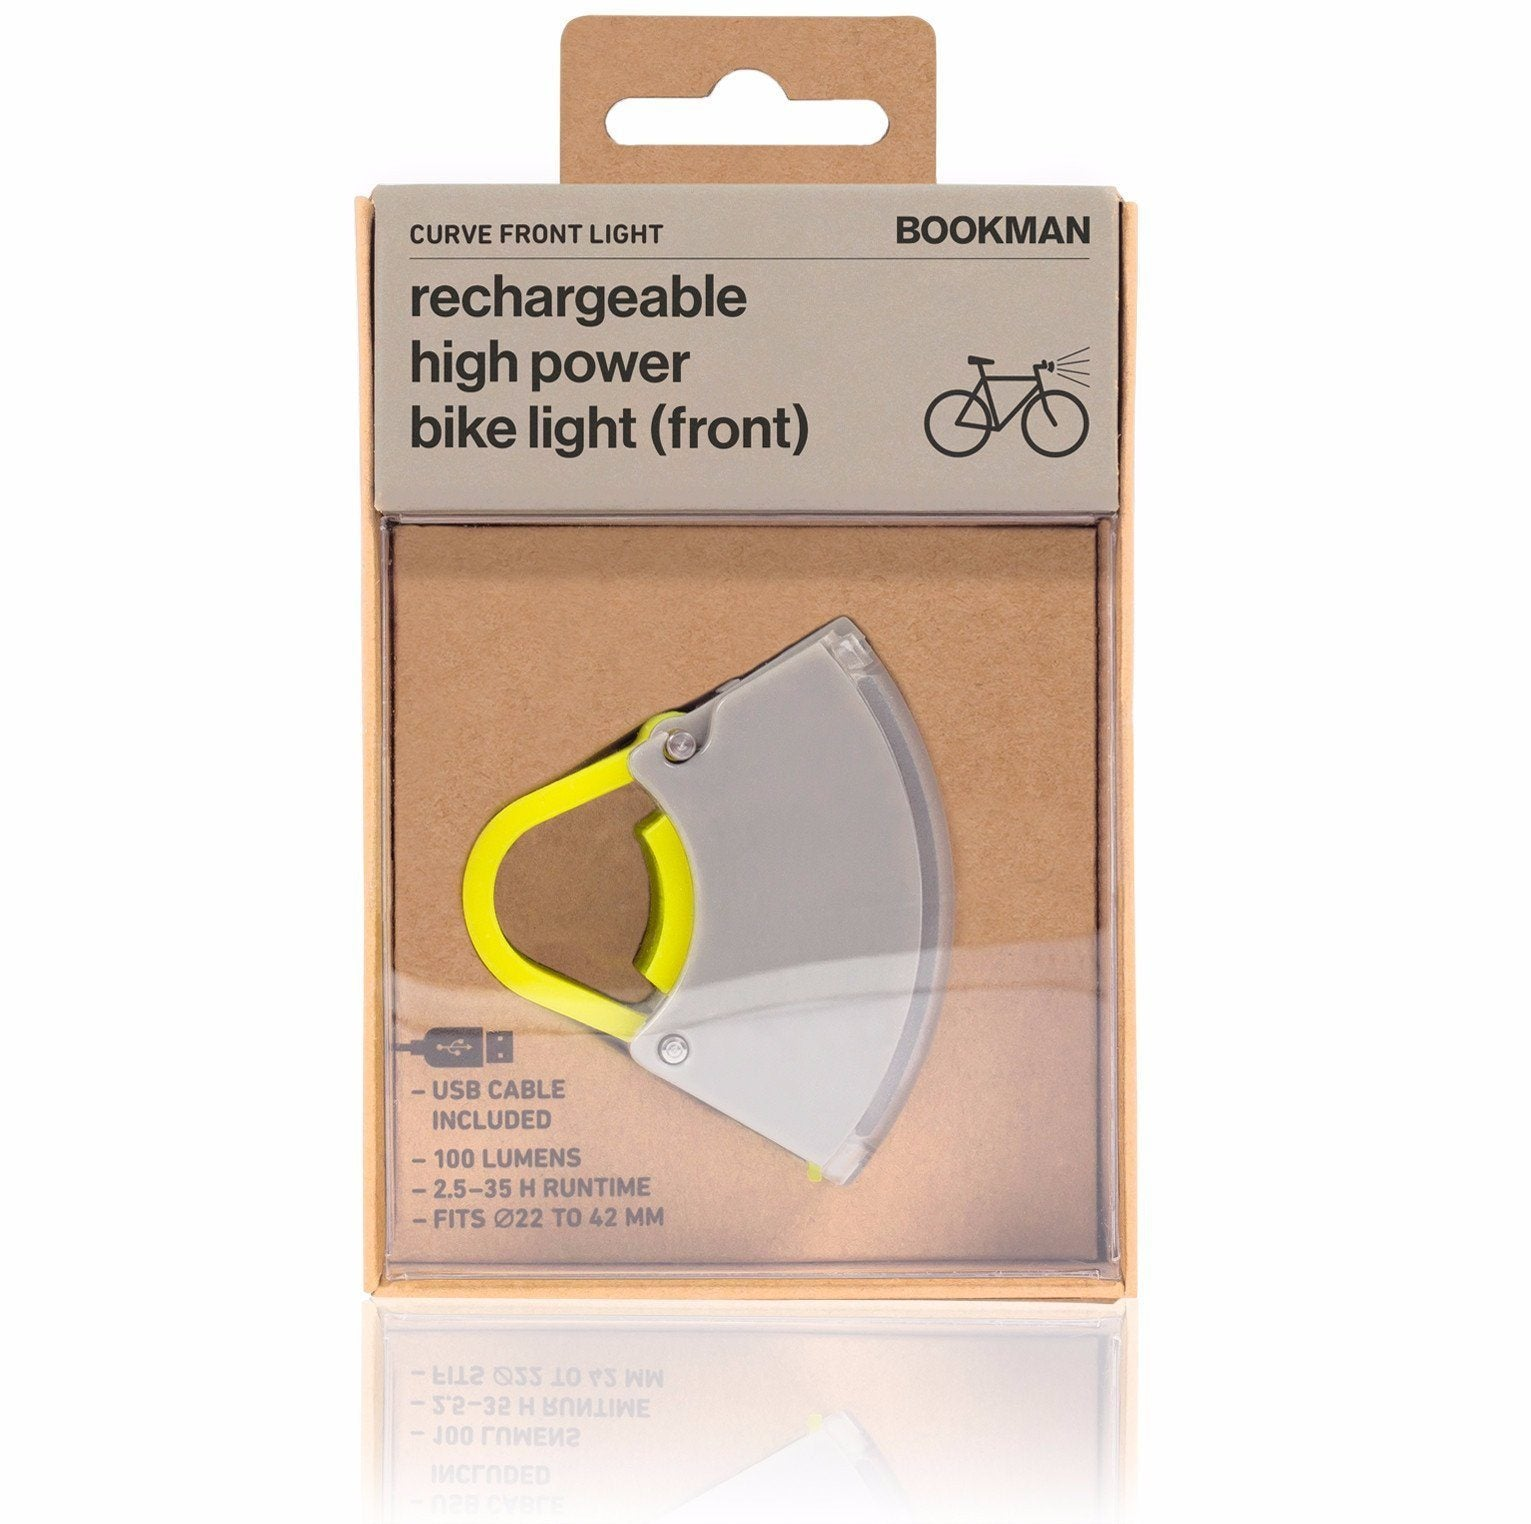 Curve Bike Light Front: Grey/Acid Yellow Bicycle Light Bookman - der ZEITGEIST